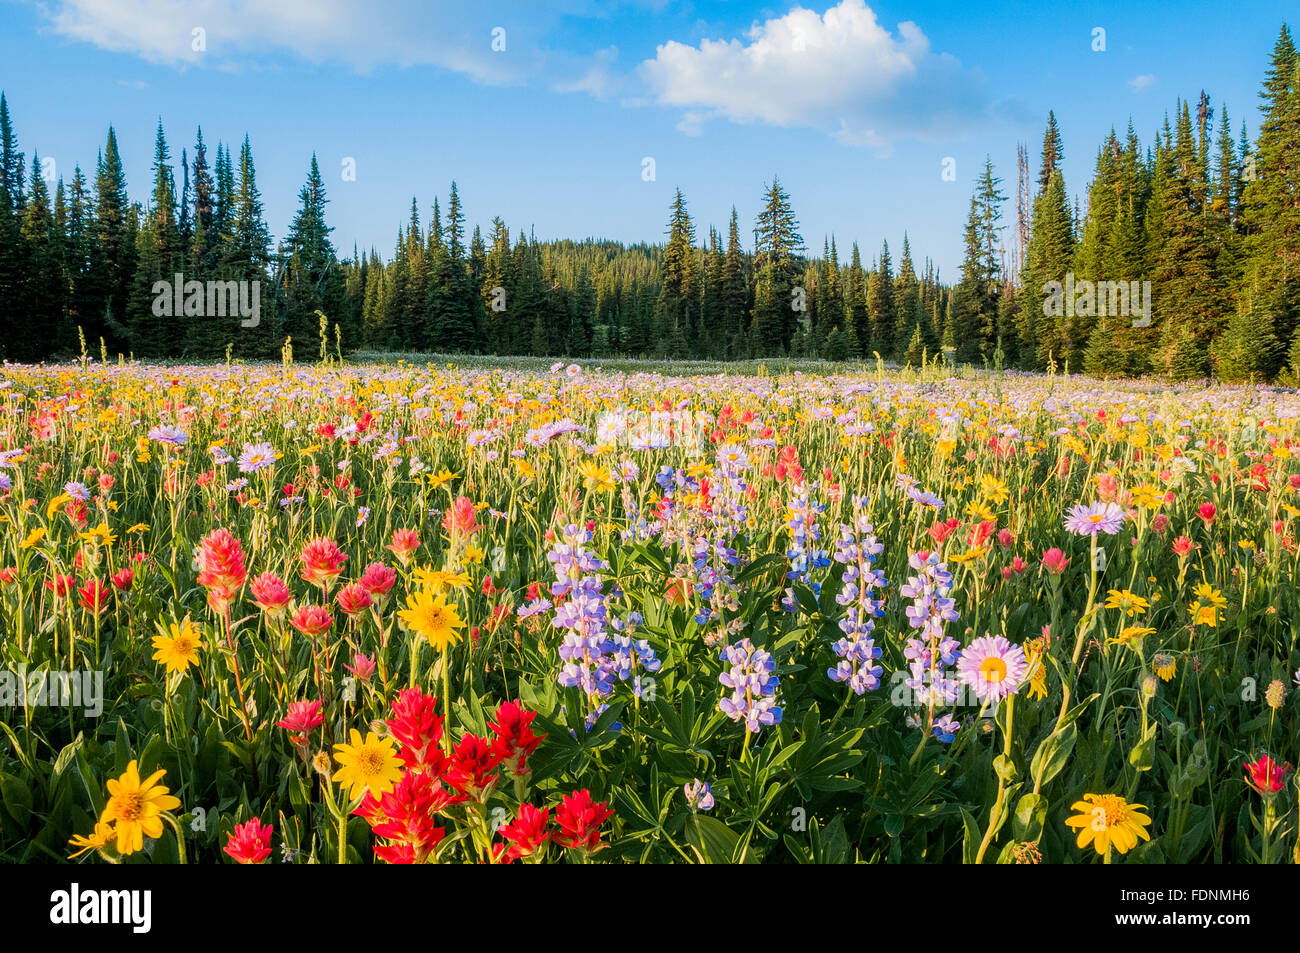 Wildflowers, Trophy Meadows, Wells Gray, Provincial Park, BC, Canada - Stock Image